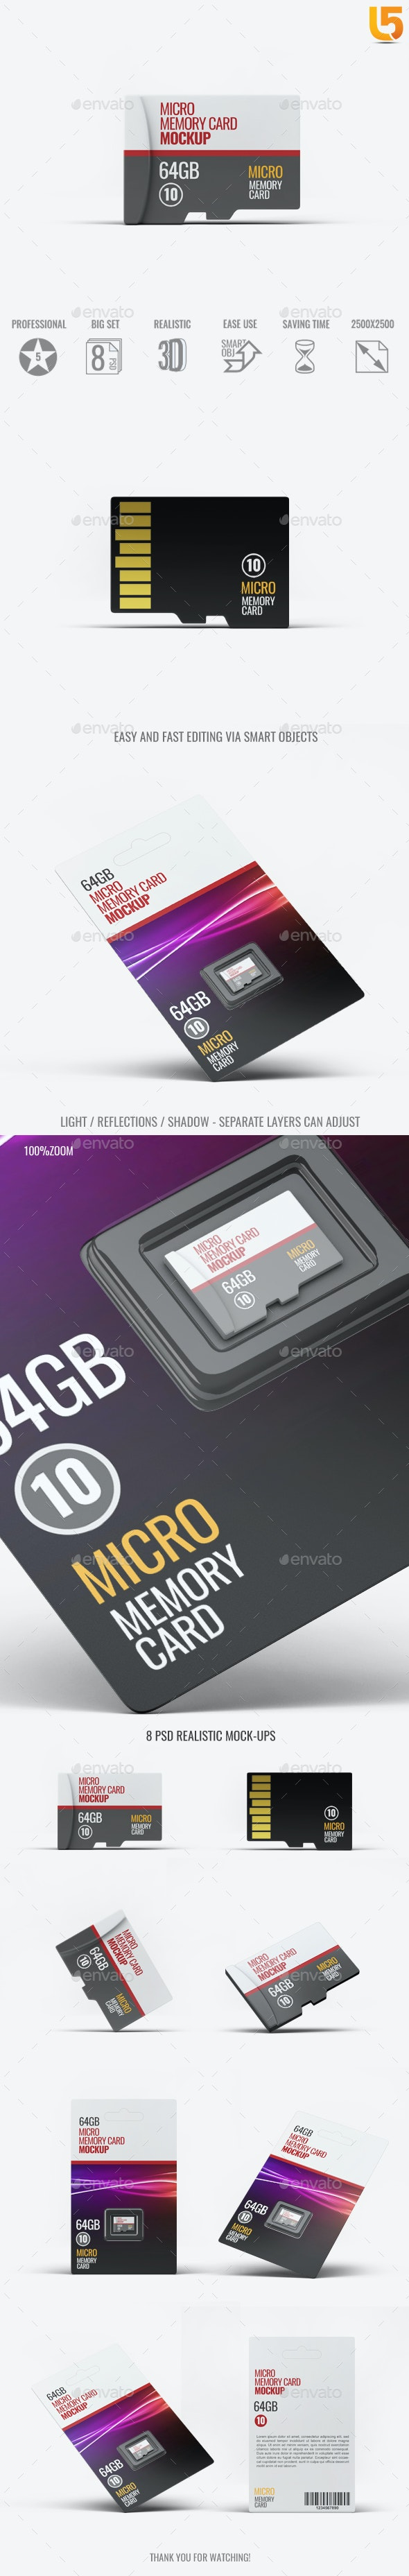 Micro Memory Card Mock-Up - Miscellaneous Product Mock-Ups